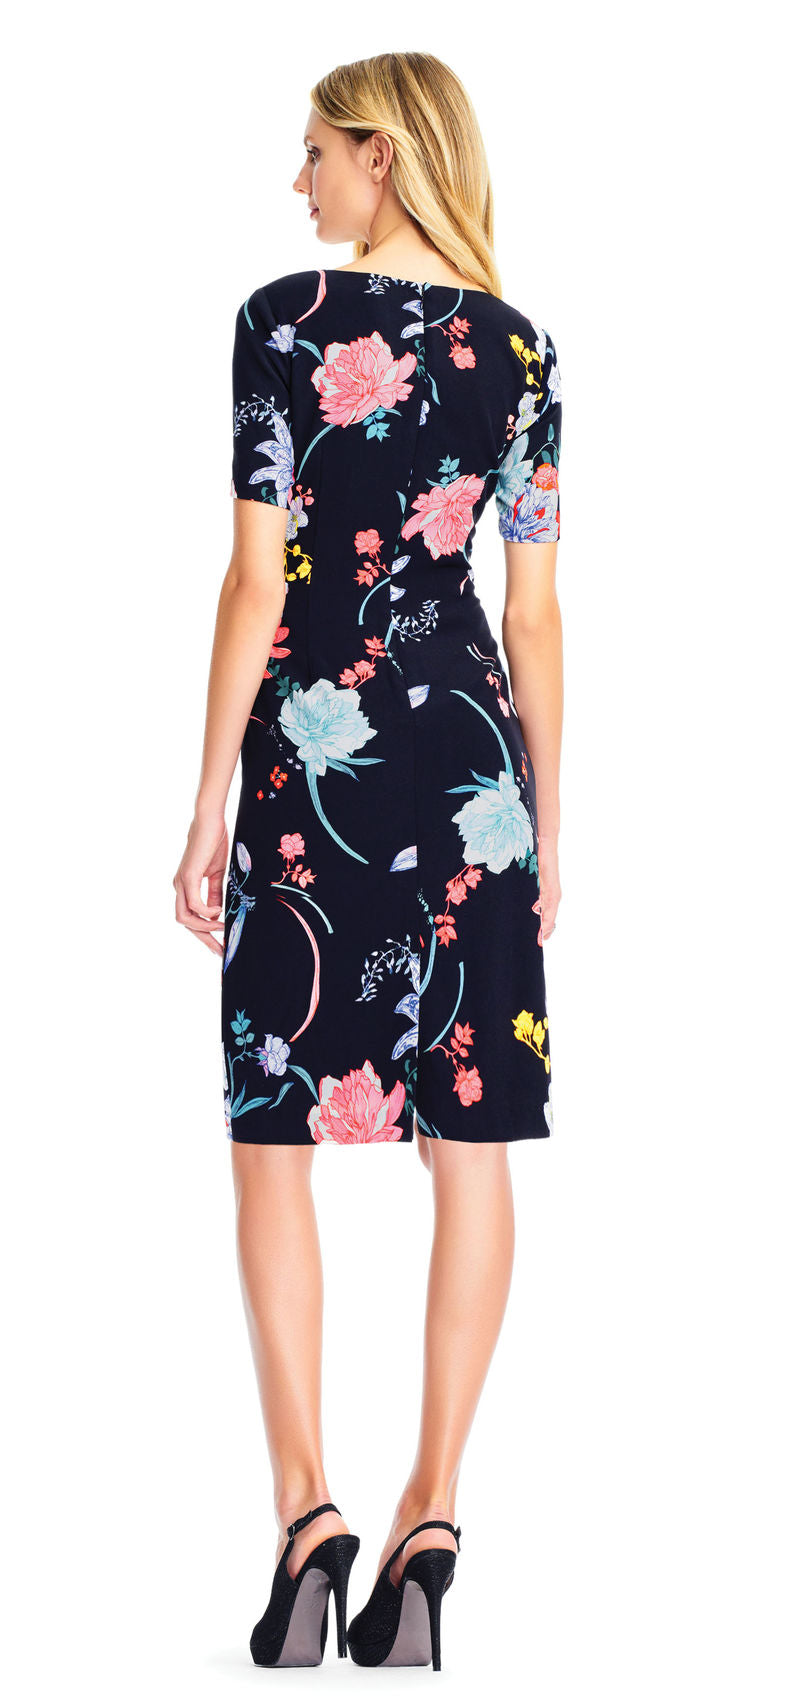 Black Floral Sheath Short Dress